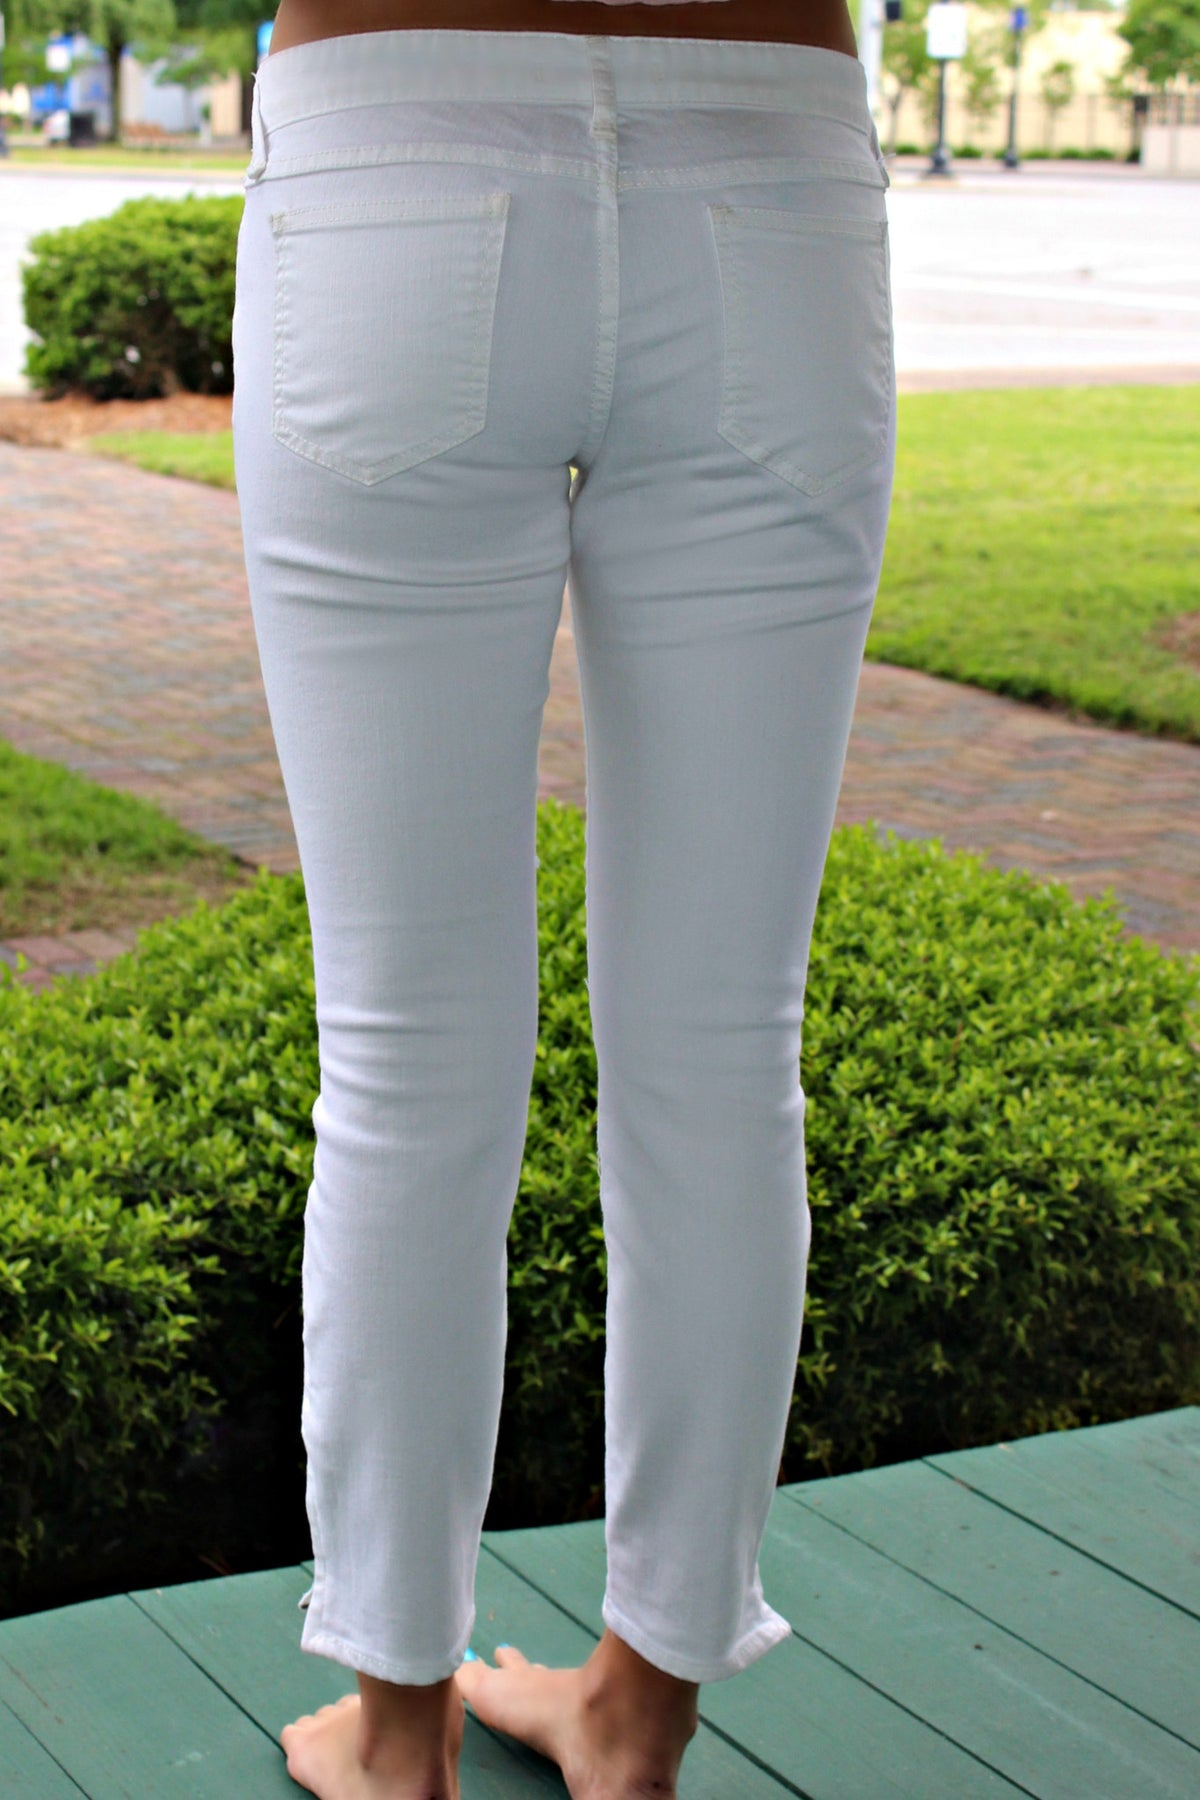 Free People: Cropped Skinny Jeans, White